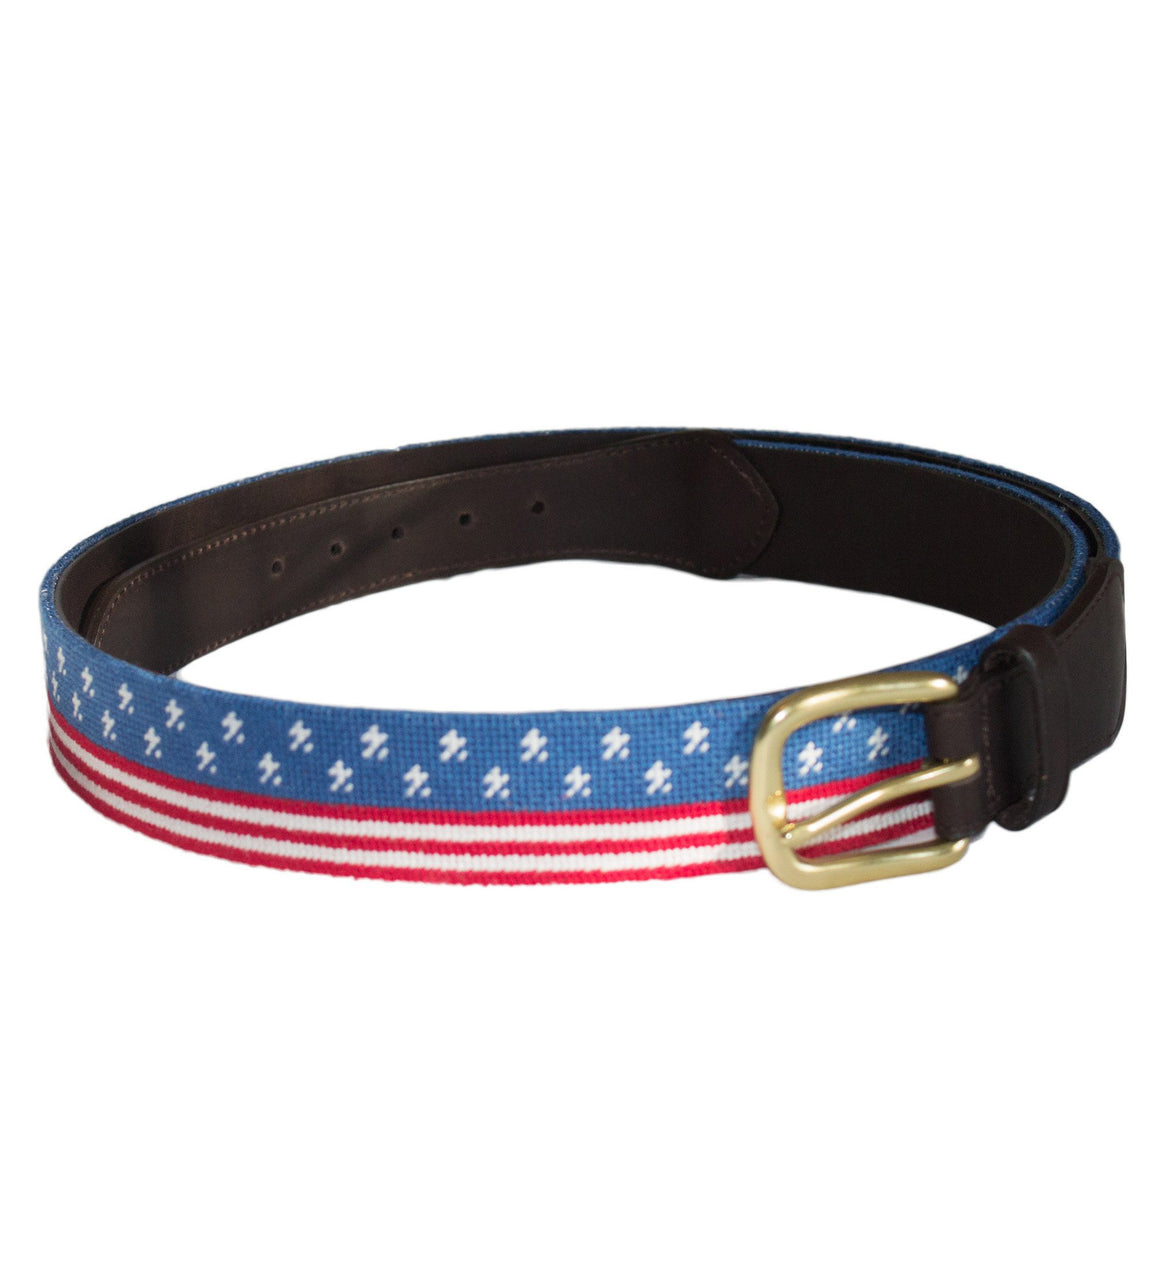 Needlepoint Belt - Stars & Stripes